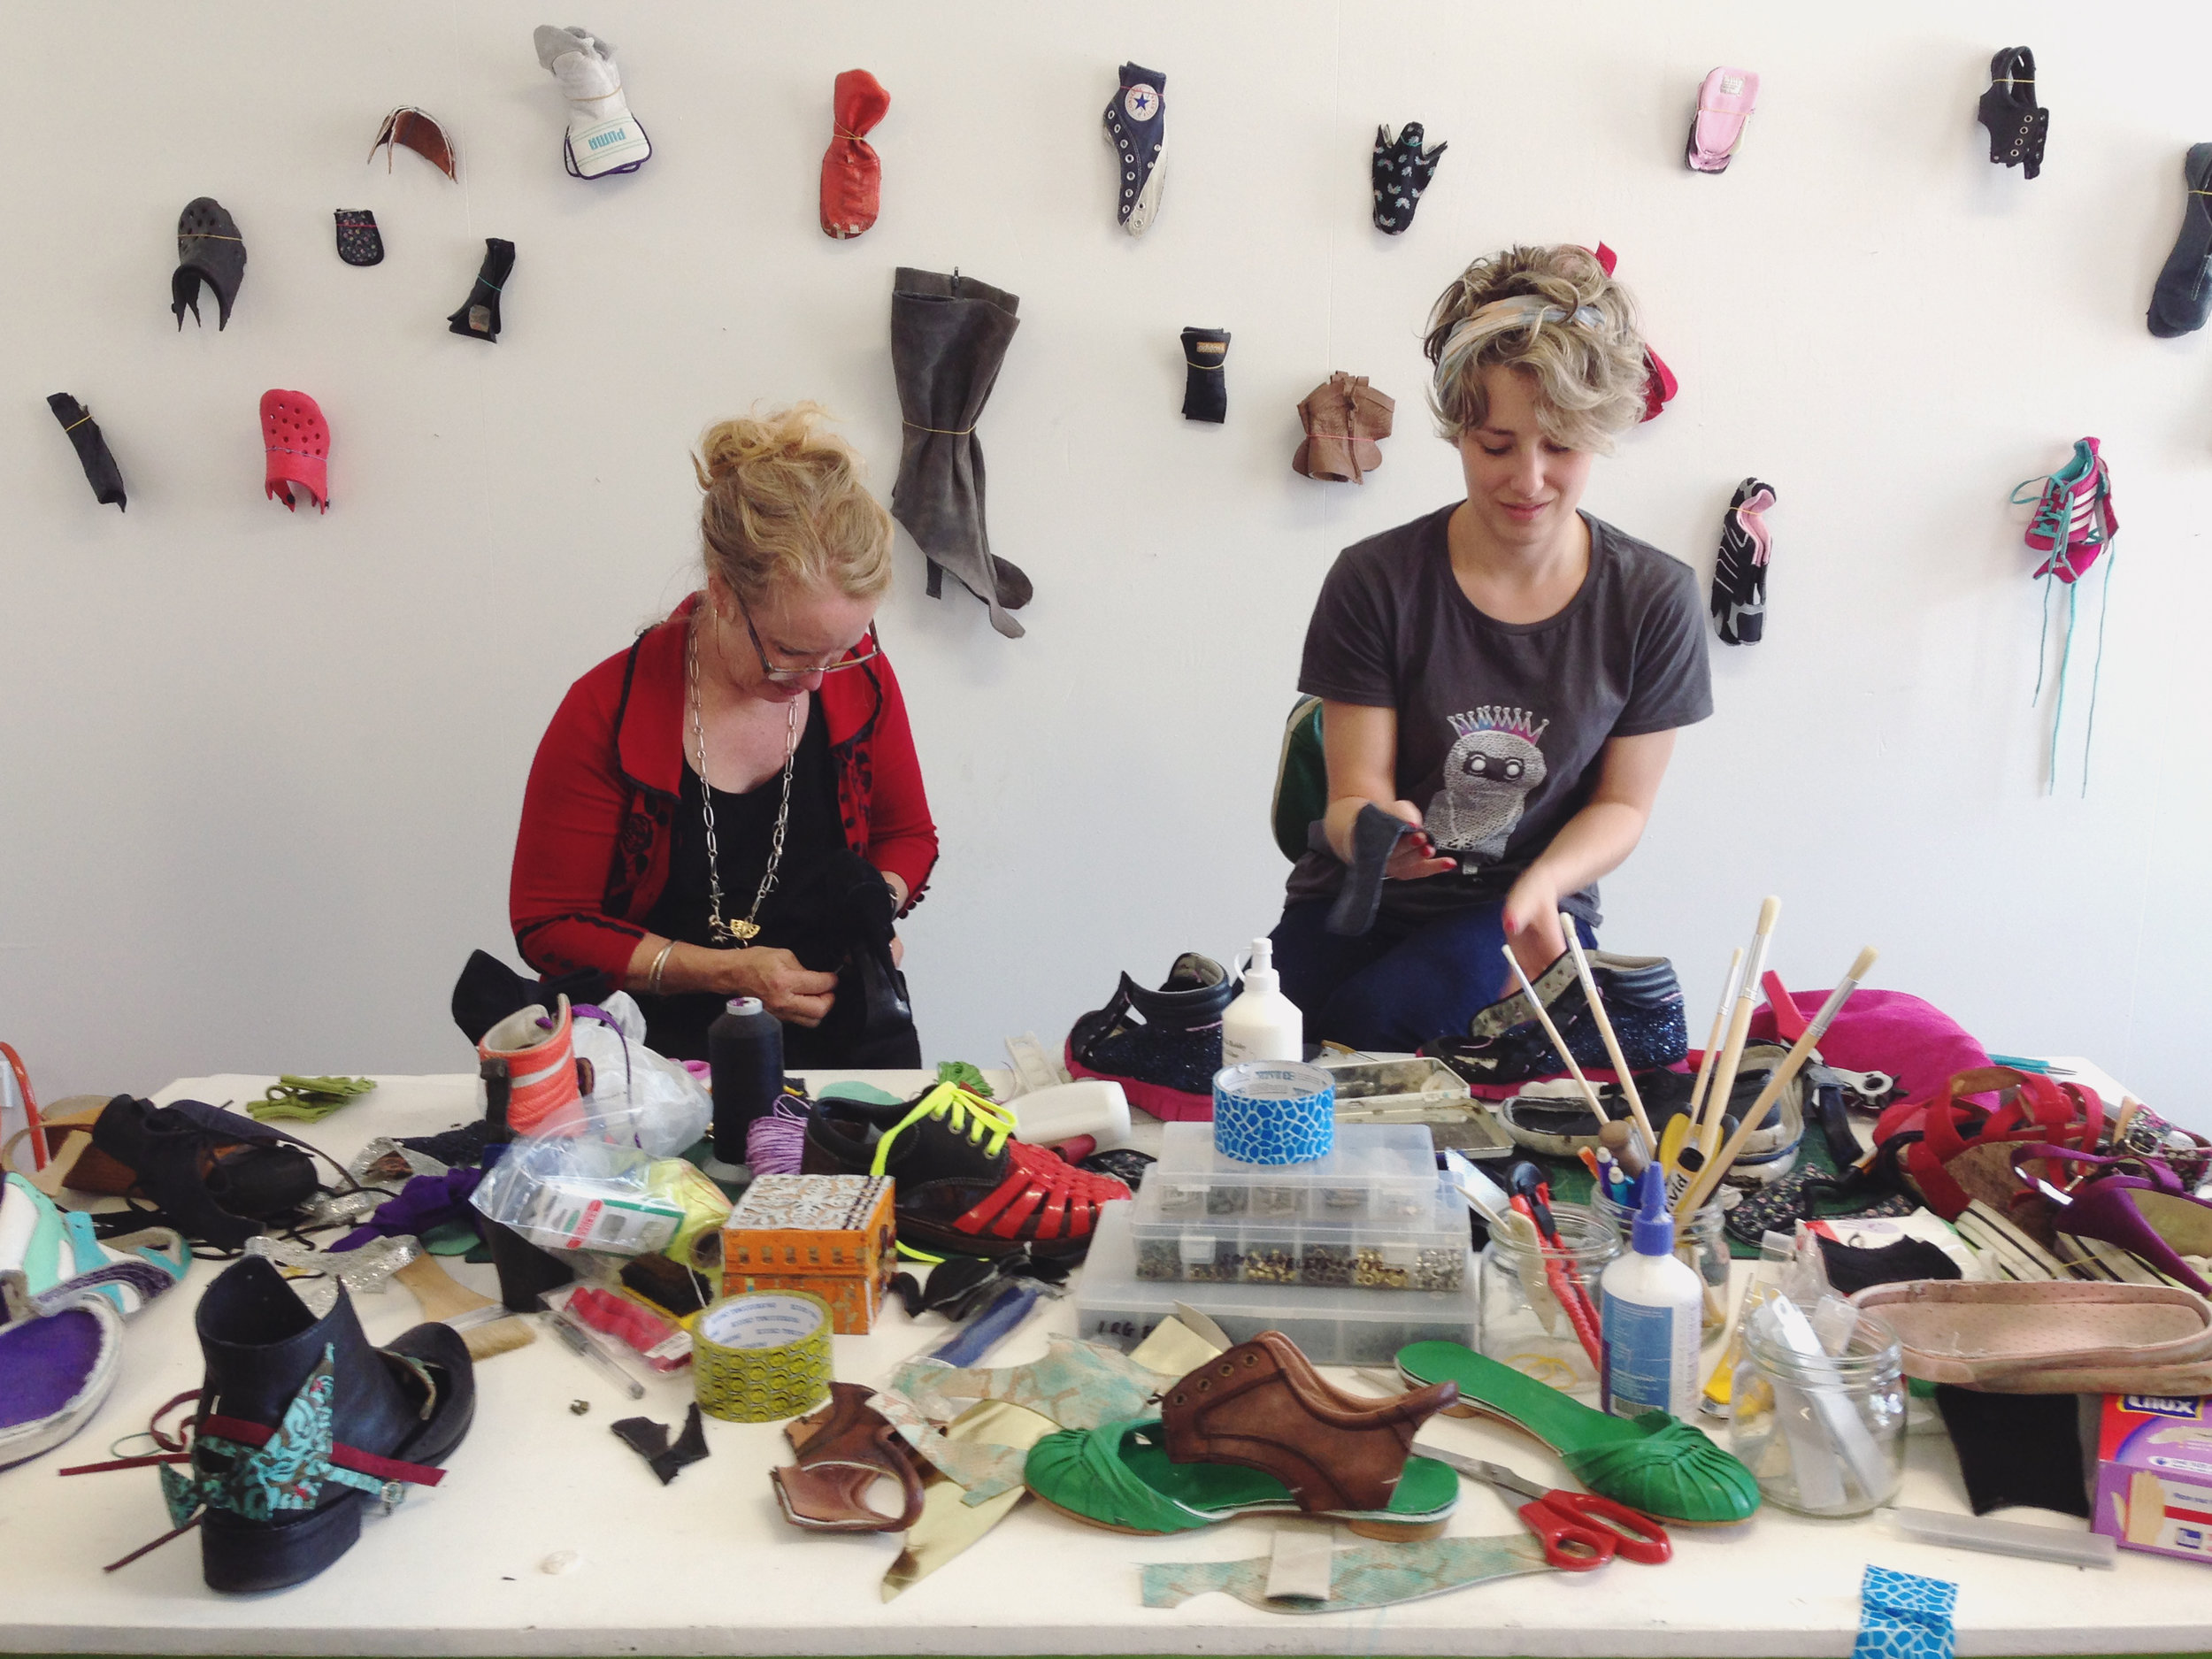 Frankenfoot   an Urban Dream Brokerage in Dunedin in 2017 which upcycles shoes into wearable art. Image: Justin Spiers.